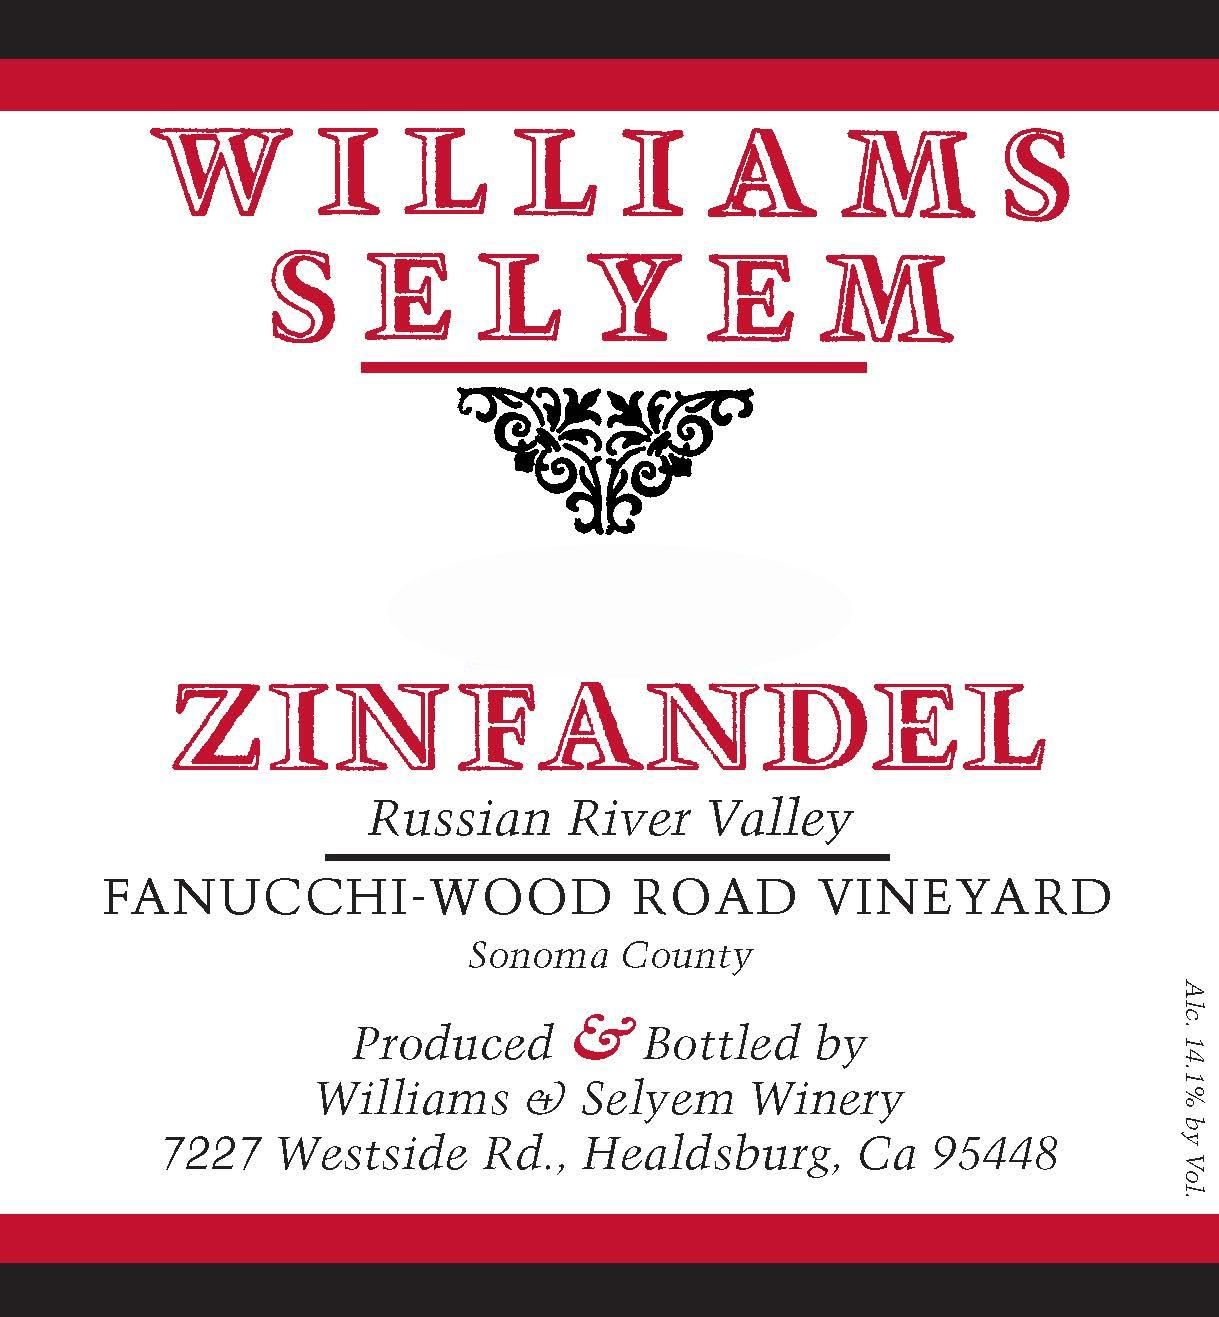 Williams Selyem Fanucchi-Wood Road Zinfandel 2017 Front Label